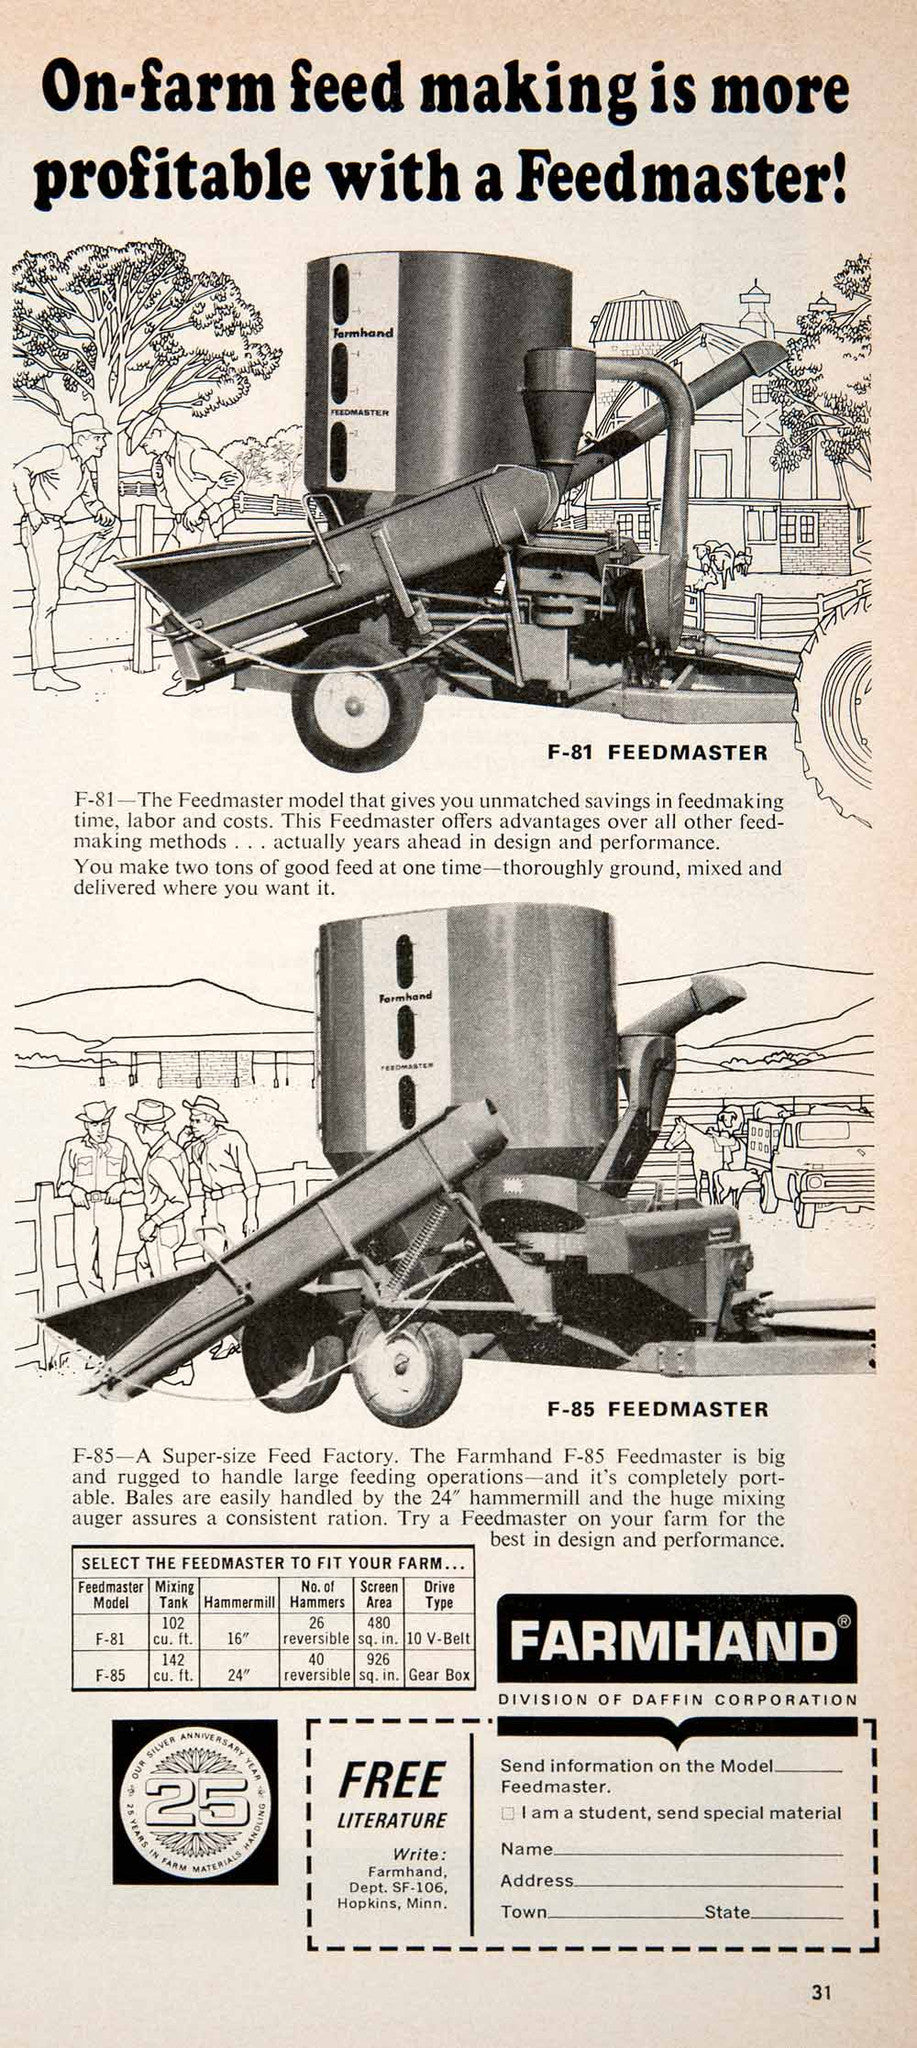 1966 Ad F-81 F-85 Feedmaster Farmhand Daffin Agriculture Machinery Farming SF2